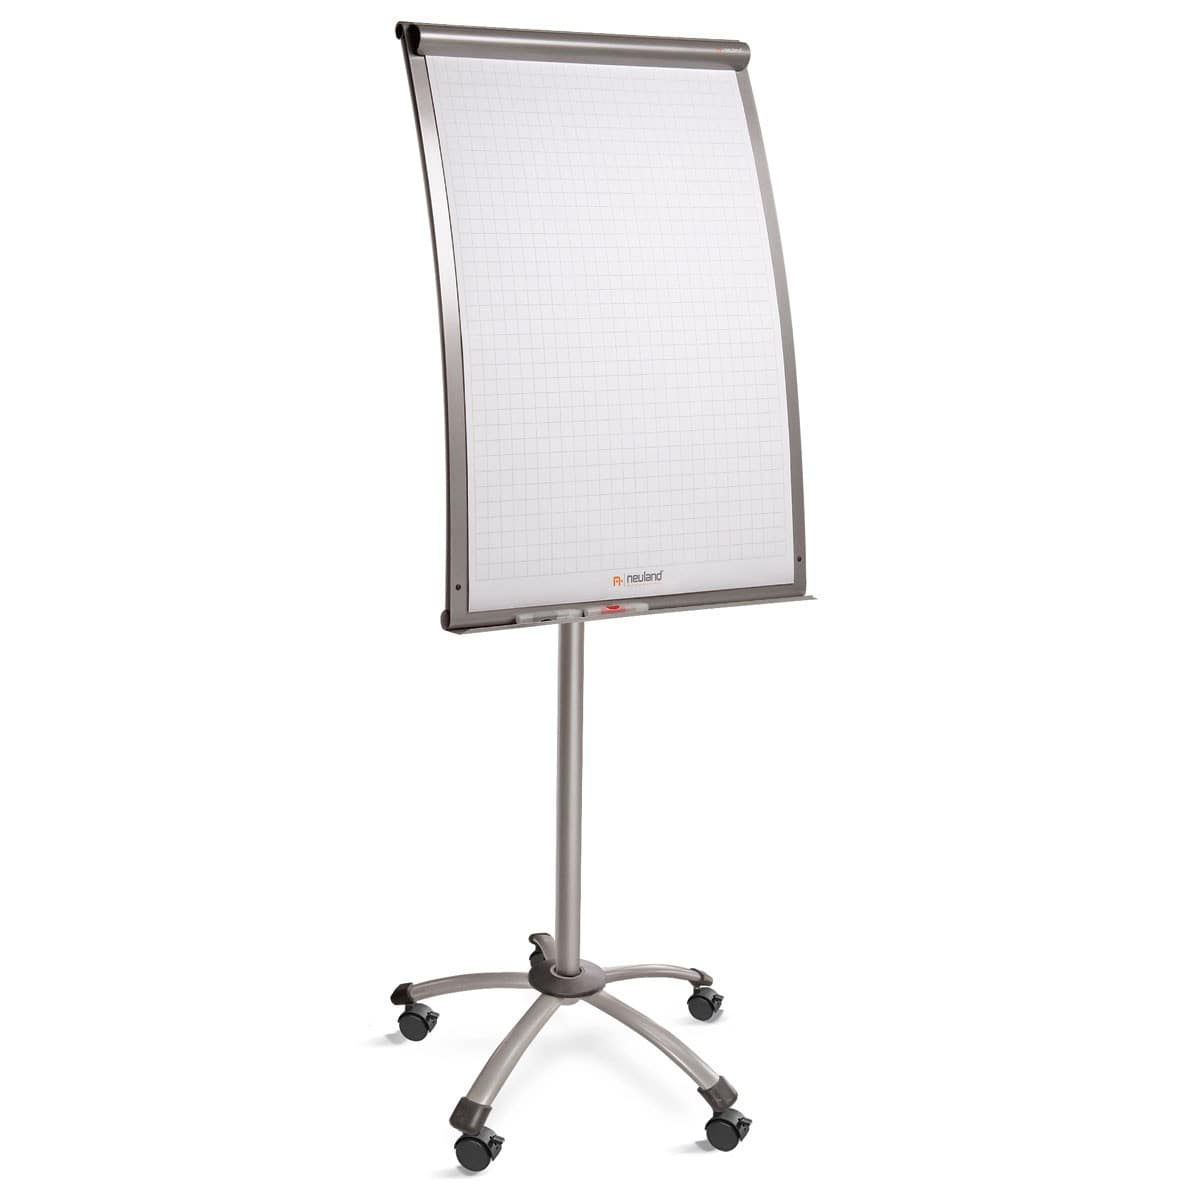 novoflip mobile flipchart flipchart range flipcharts product range usa. Black Bedroom Furniture Sets. Home Design Ideas